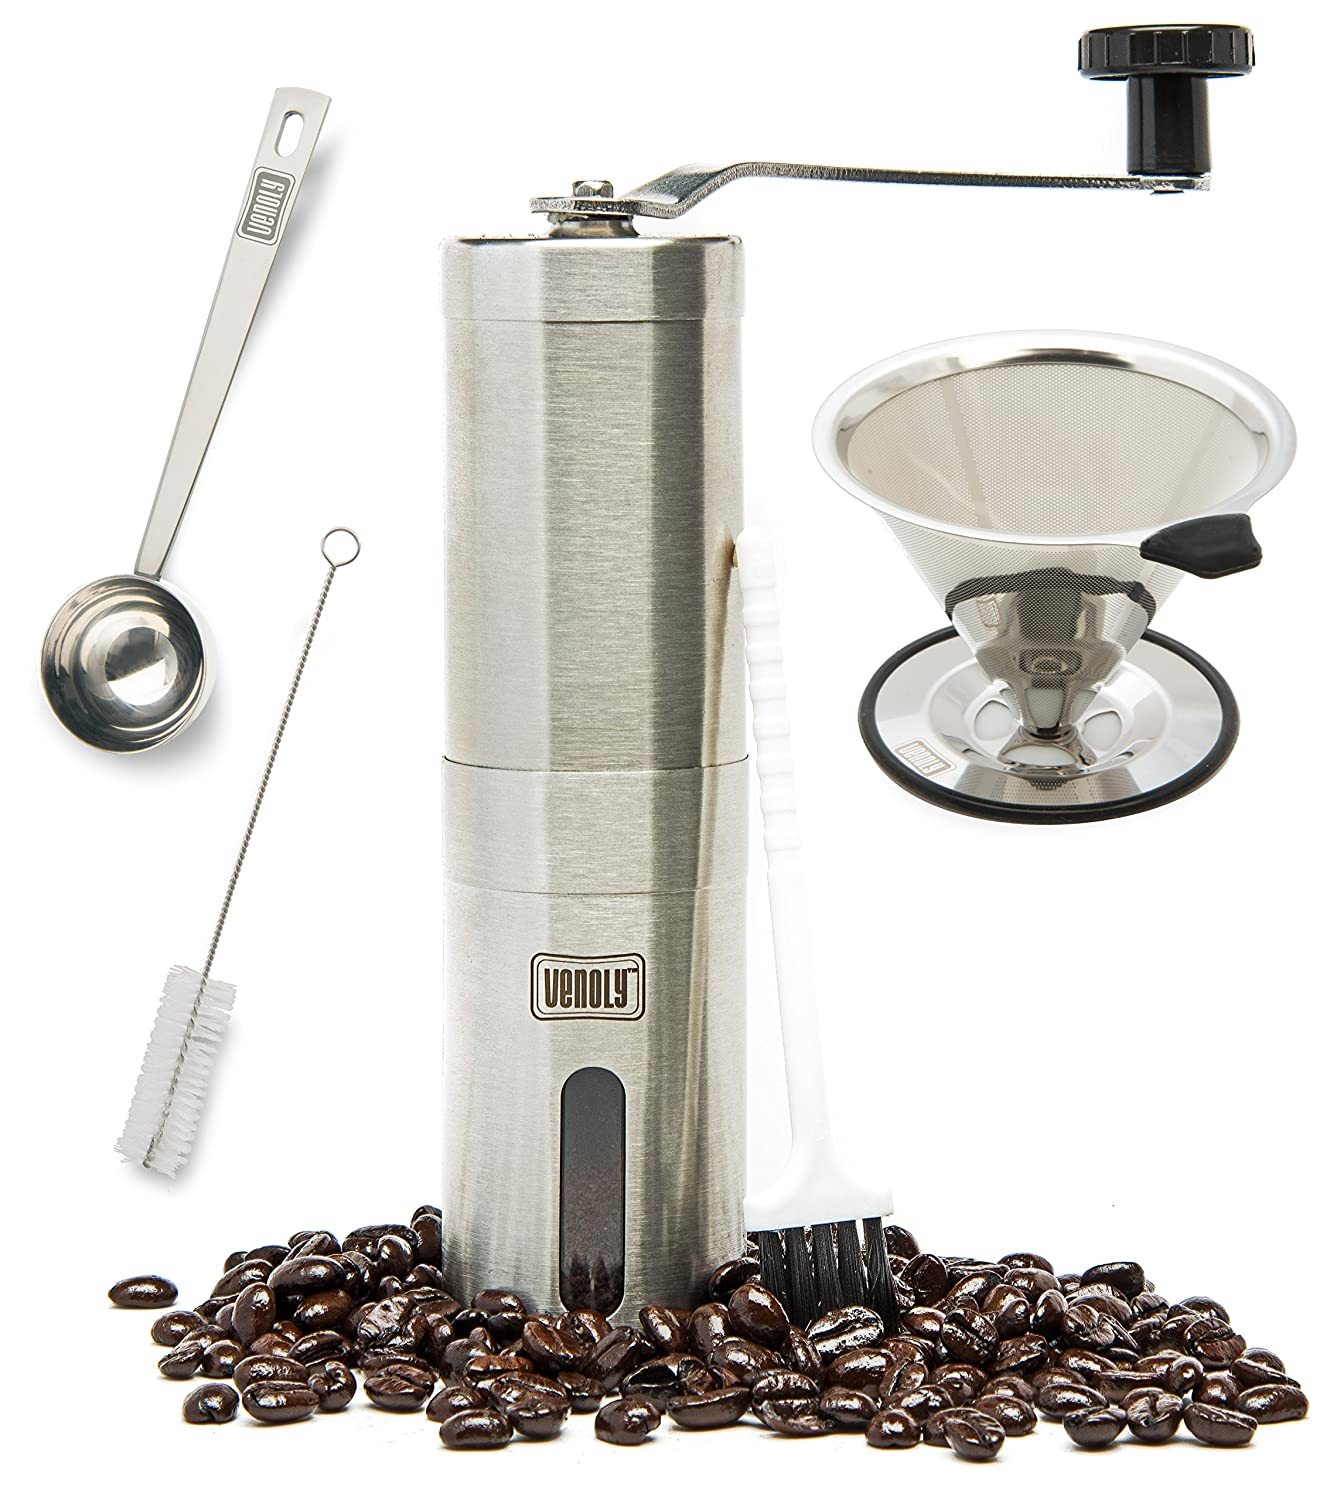 Venoly Conical Burr Coffee Grinder Stainless Steel Hand Crank Travel Coffee Grinder Set with Pour Over Coffee Dripper Brewed Coffee Maker